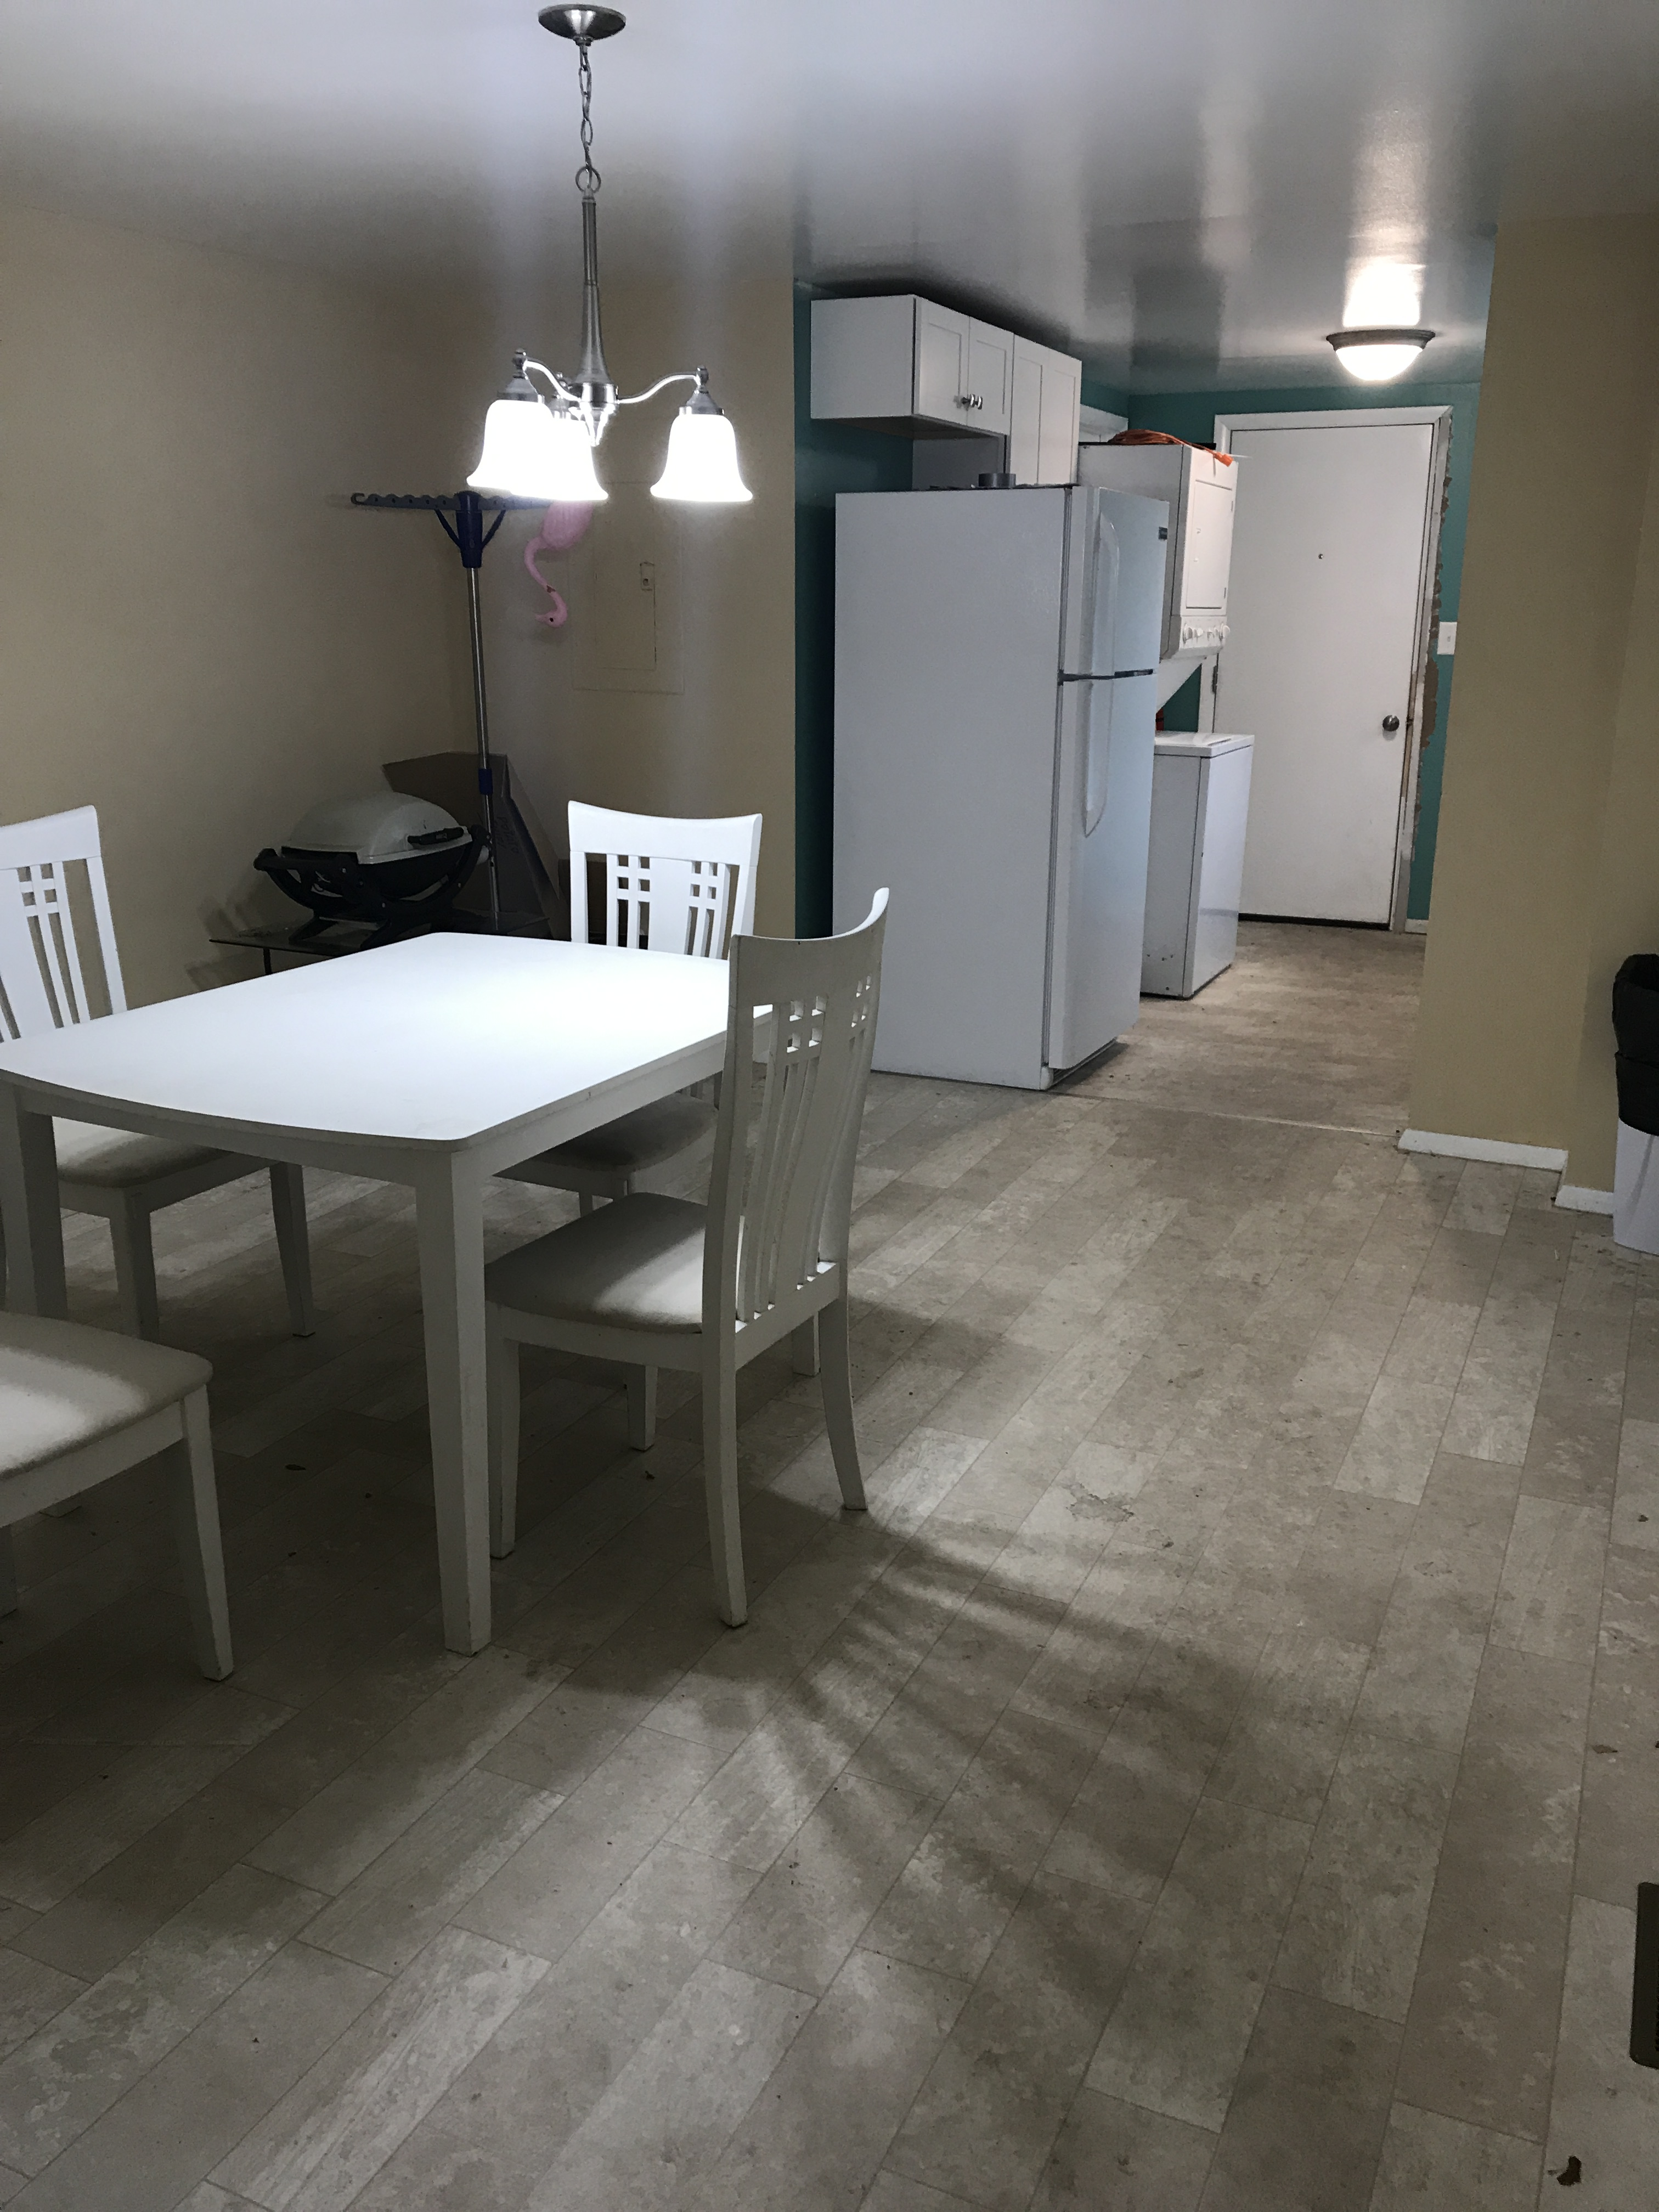 Frick-Apartment-Rentals-Indiana-PA-15701-260-Elkin-Ave4